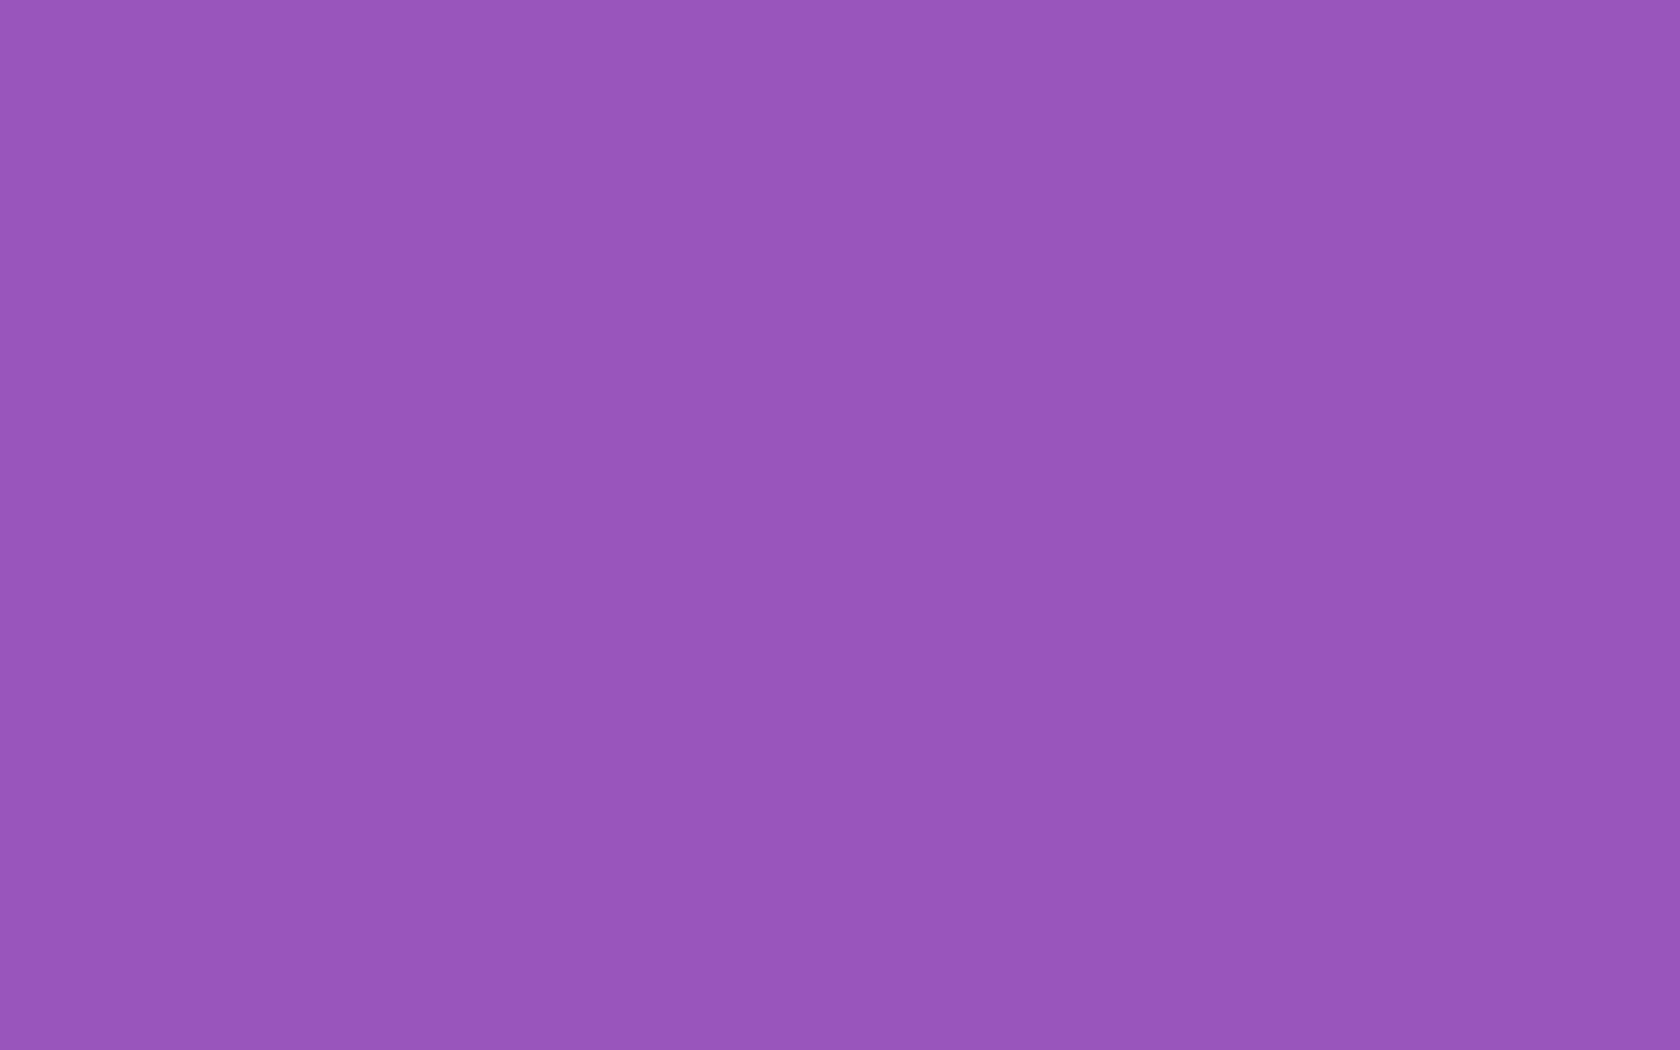 1680x1050 Deep Lilac Solid Color Background